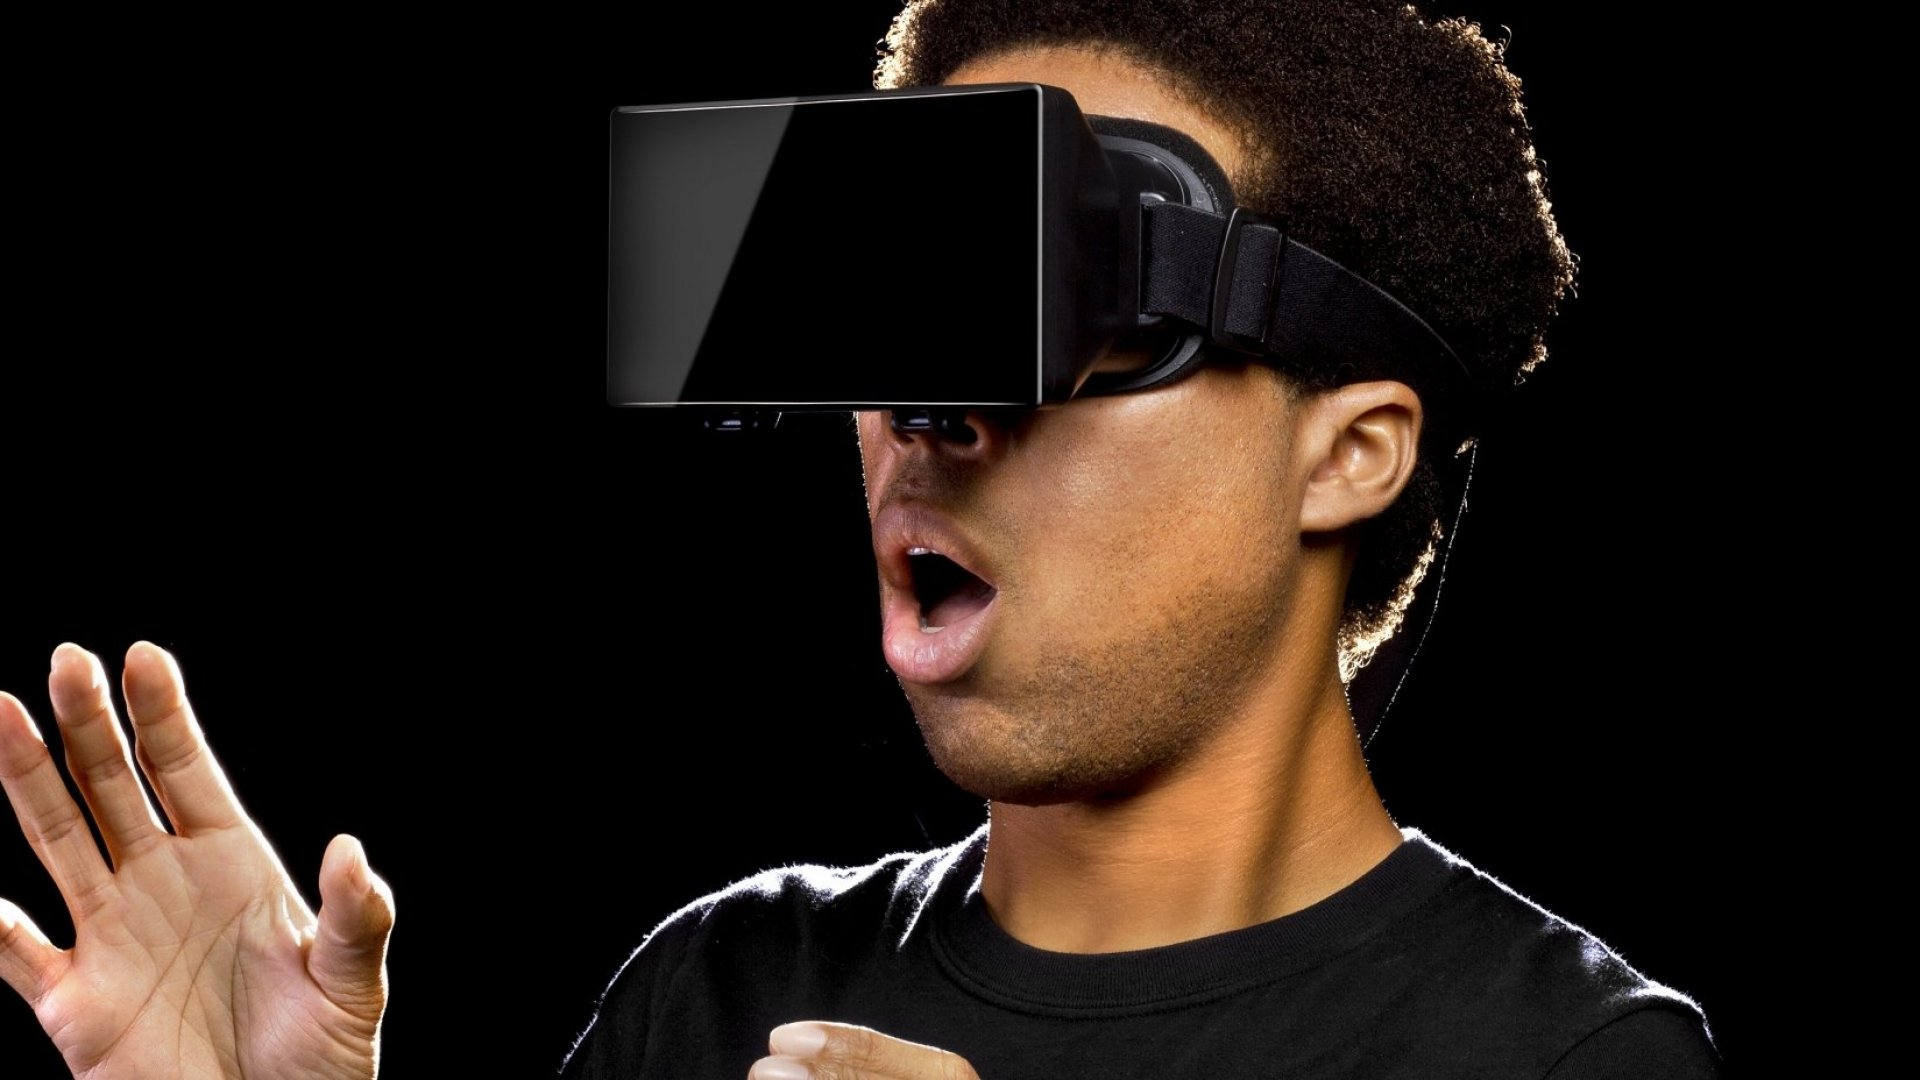 Why Virtual Reality is the Next Big Marketing Opportunity